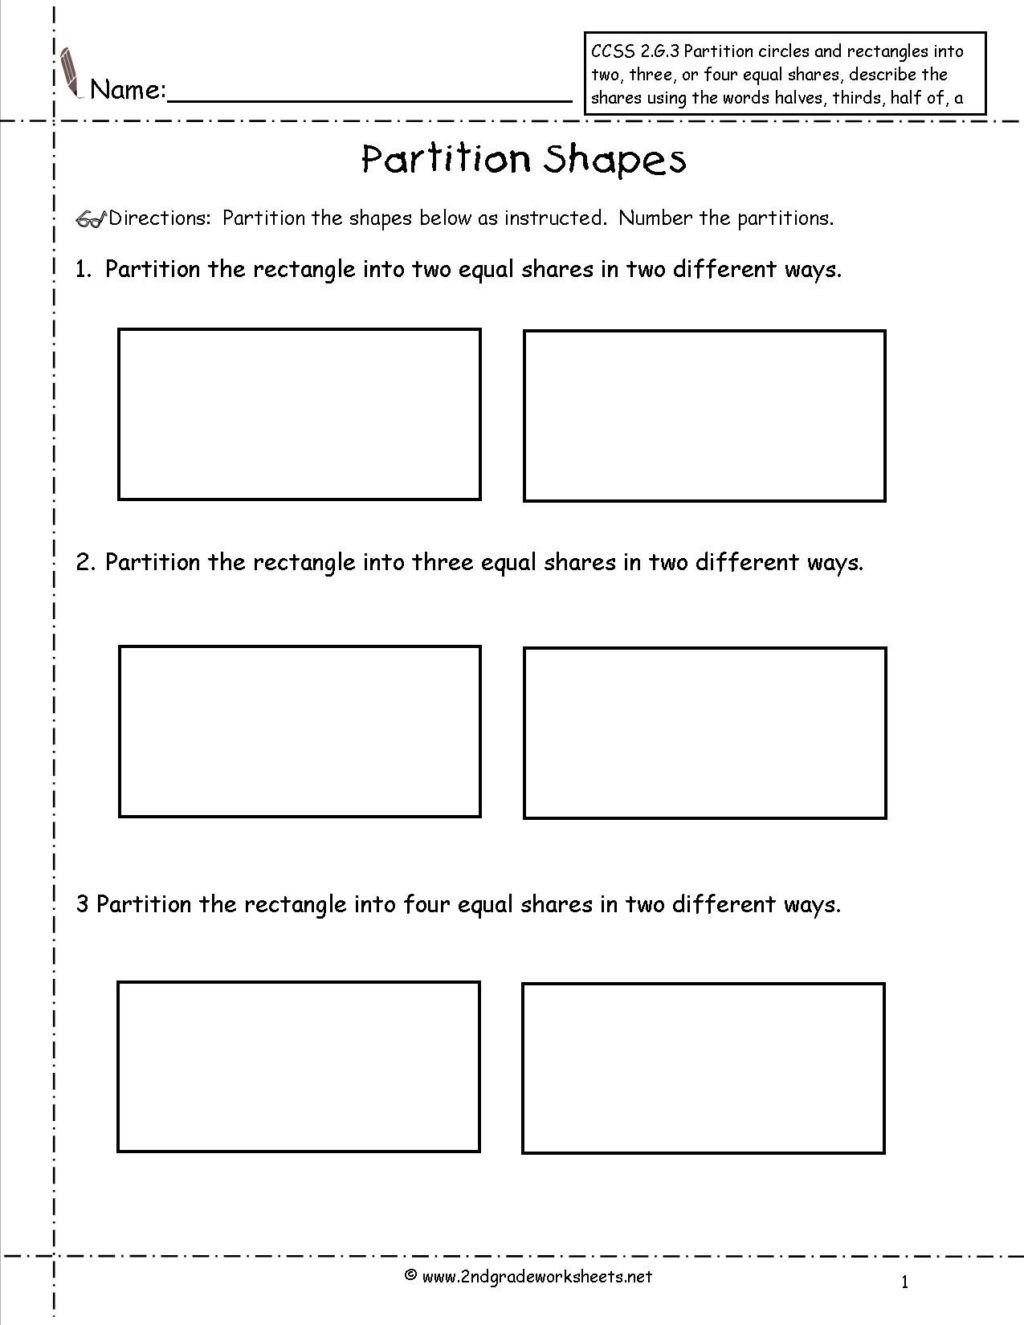 ccss 2g3 worksheet 3rd grade fractions math geometric shapes 3